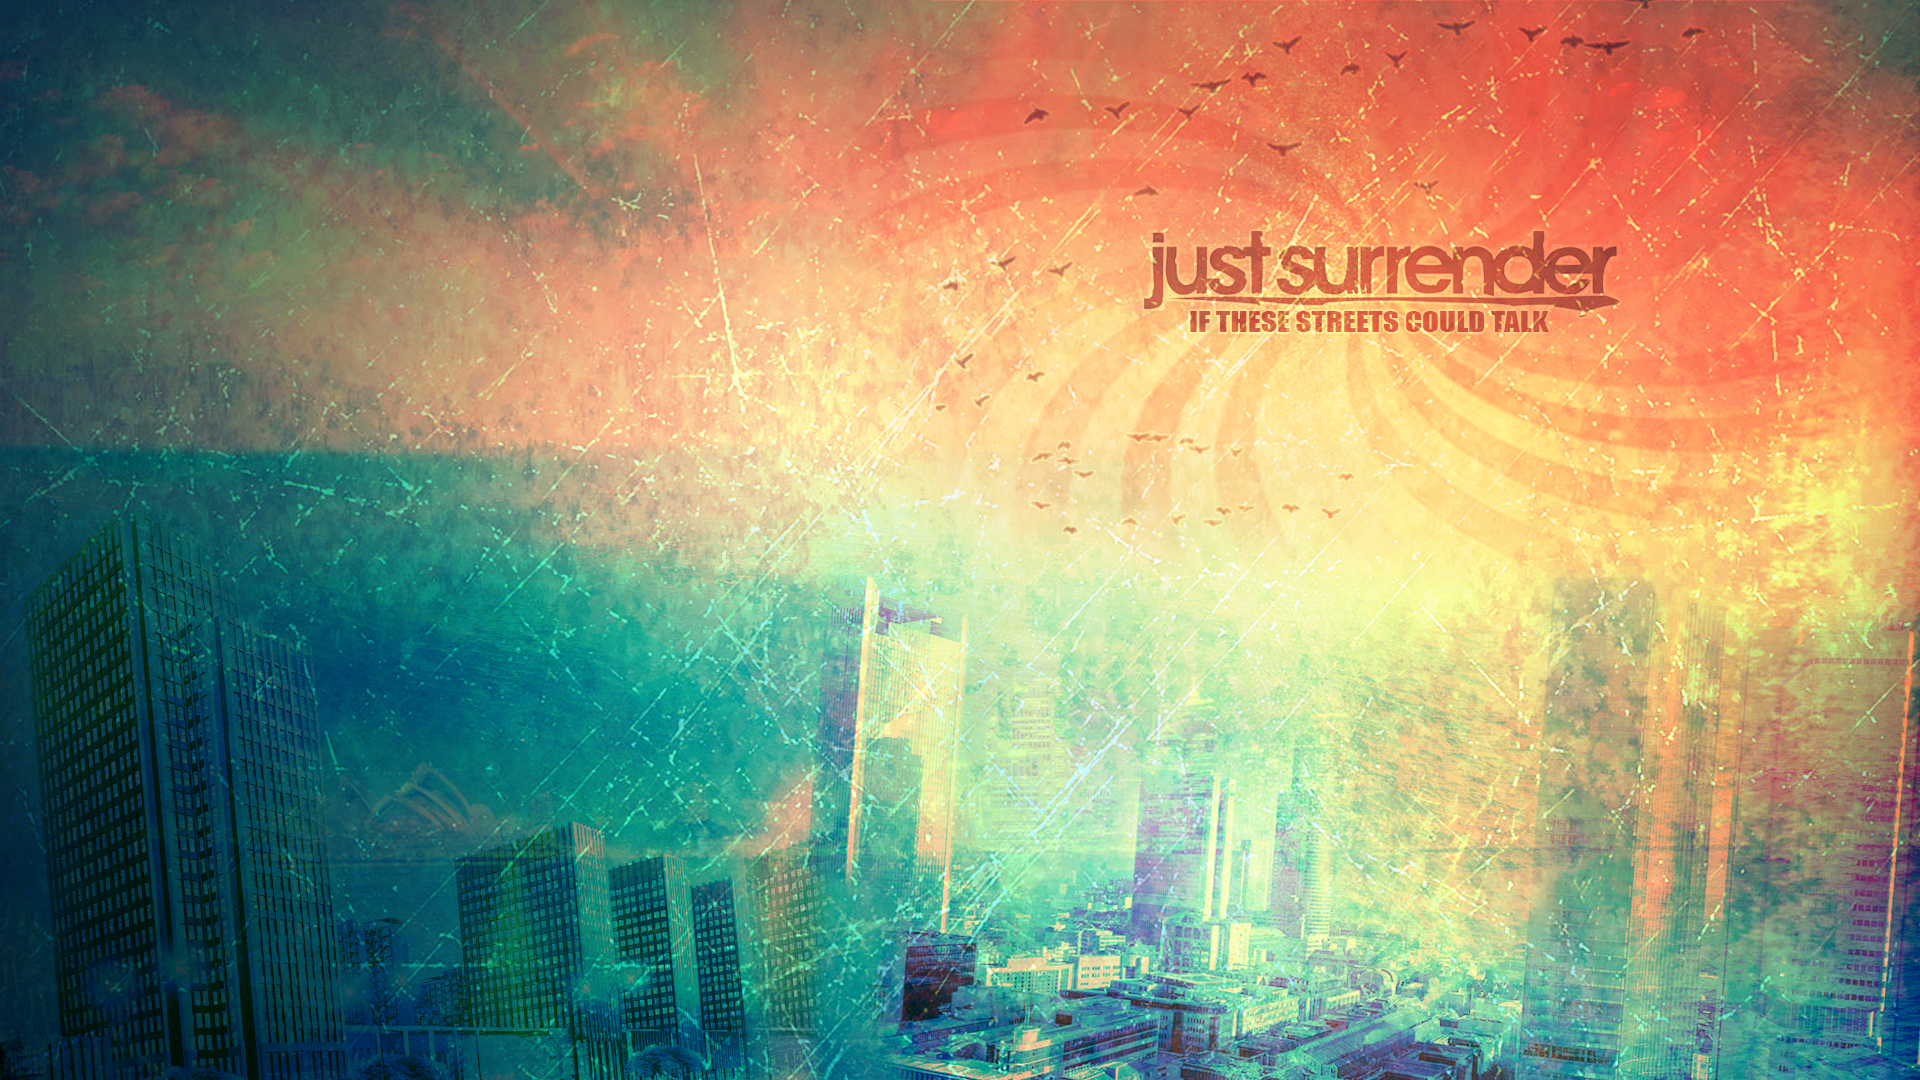 Just Surrender Wallpaper Full Hd 1080p By Polemaios On Deviantart